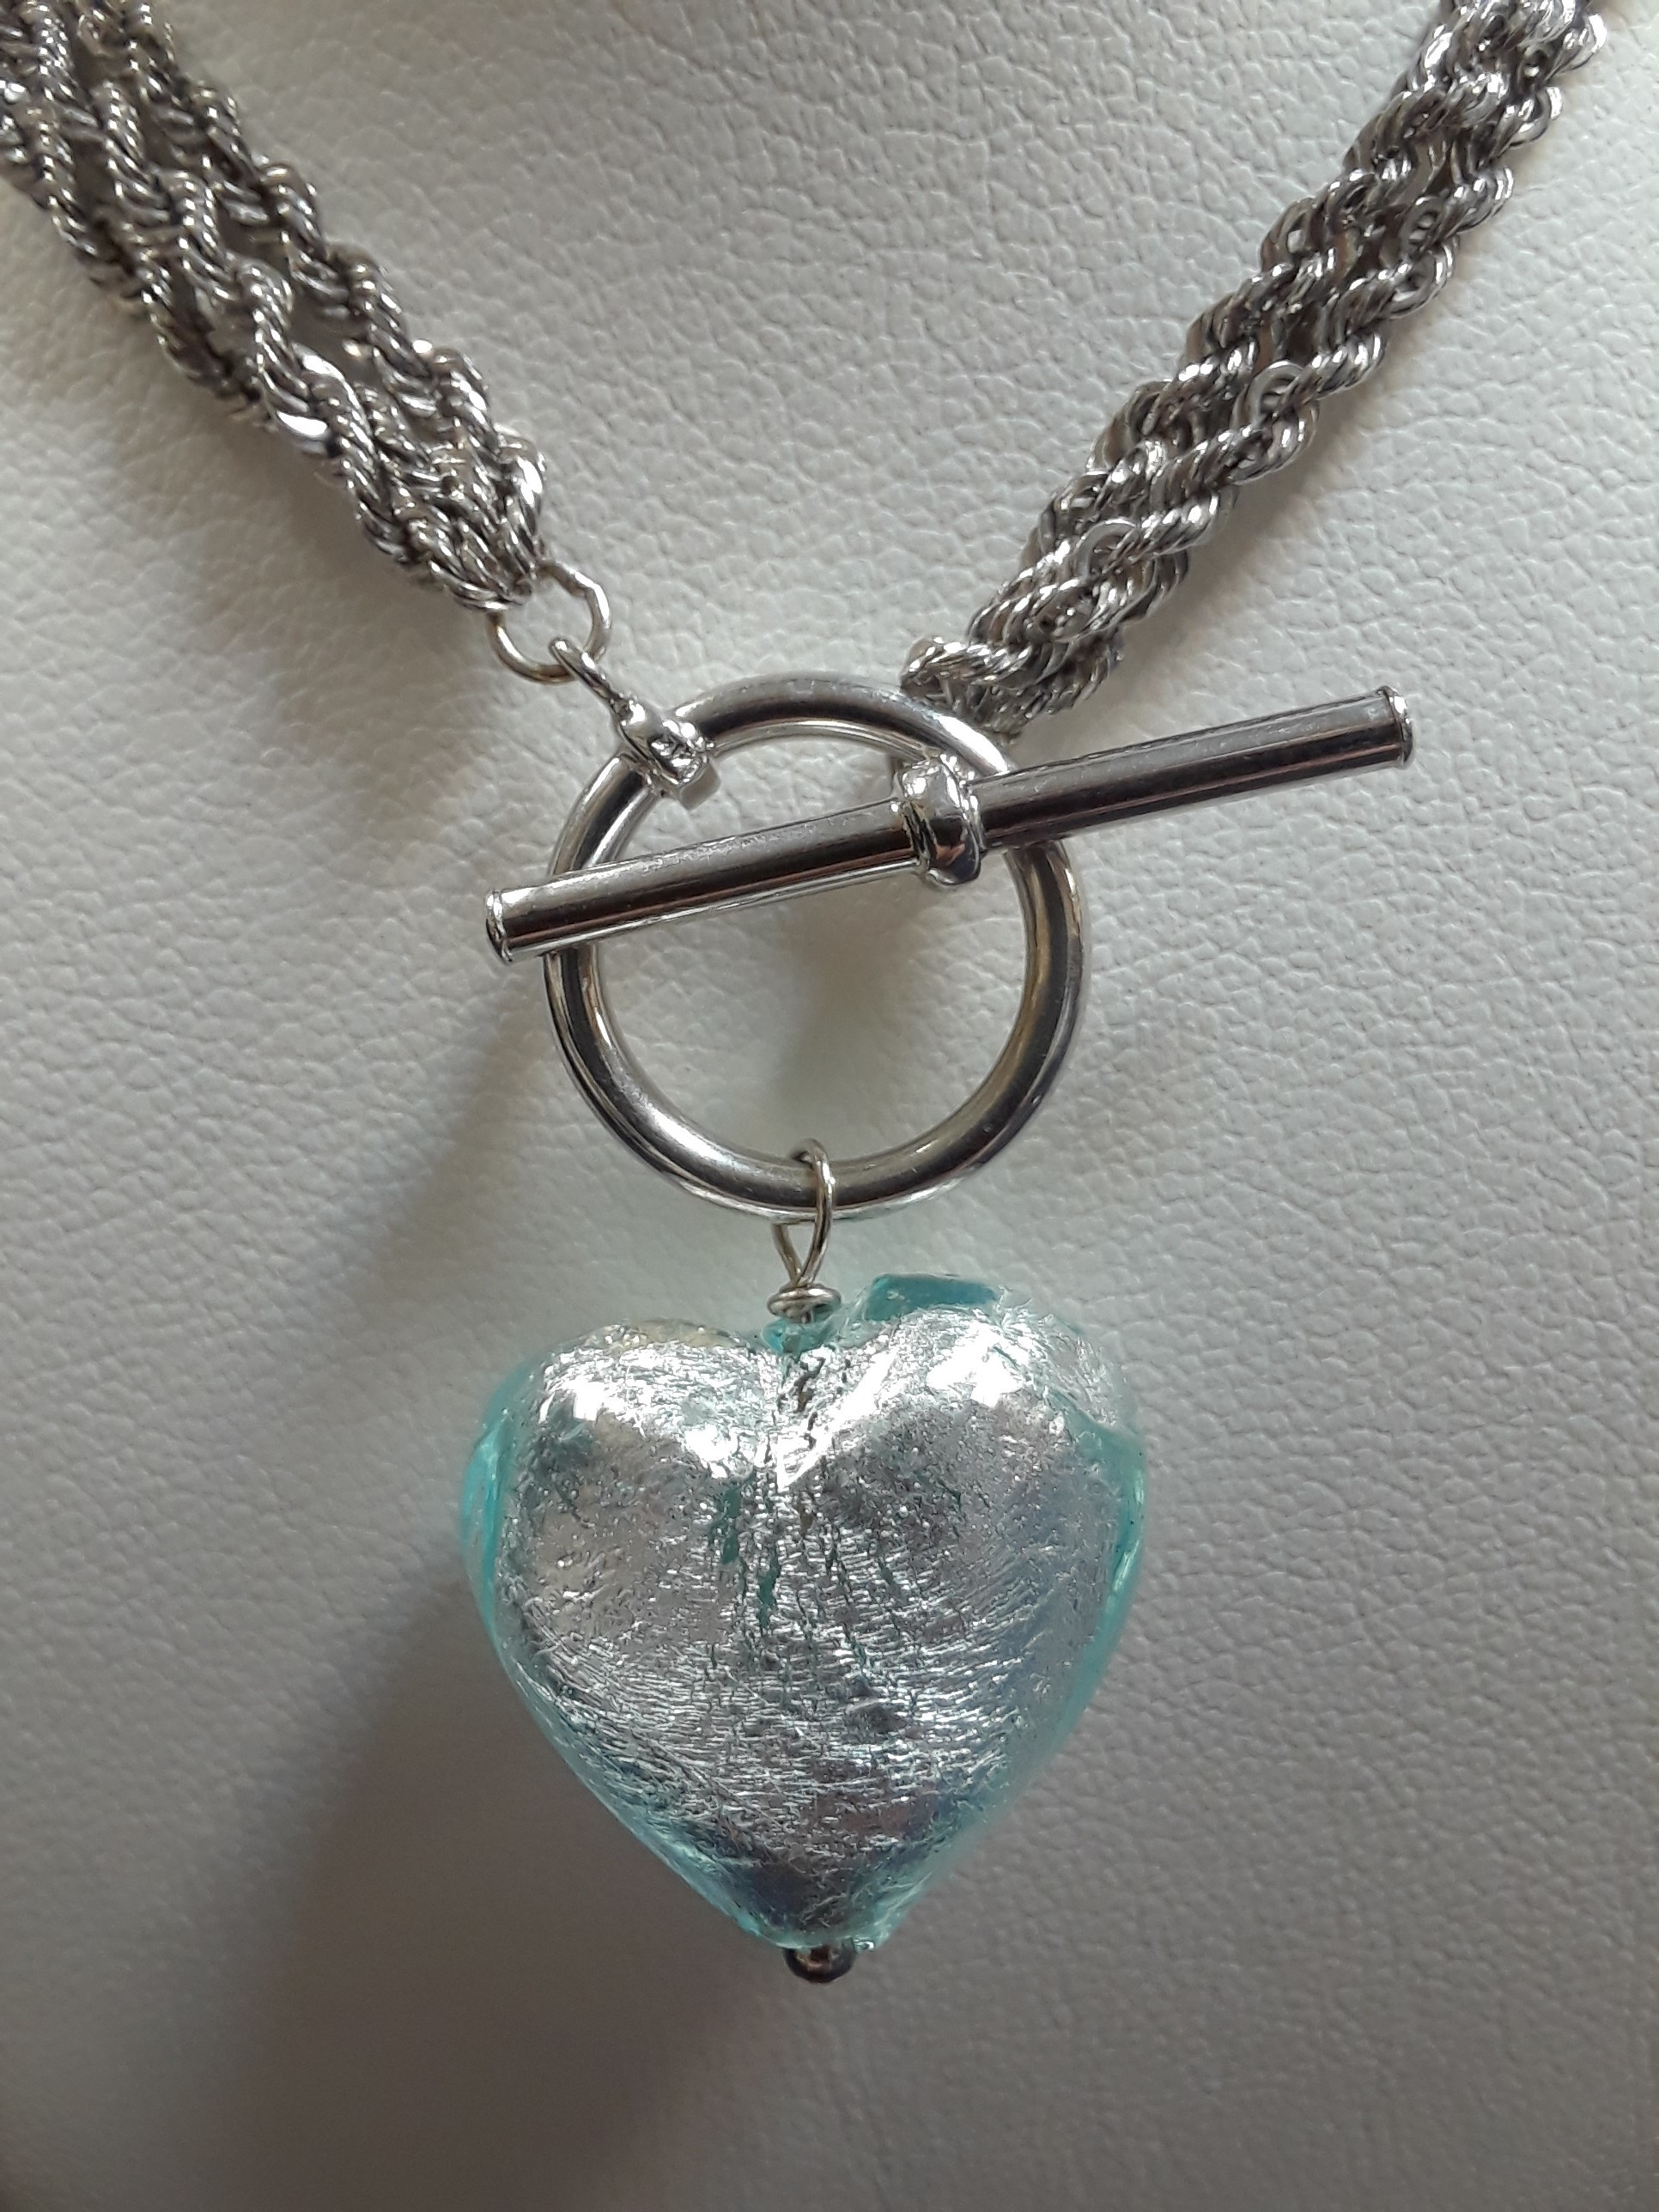 14KT WHITE GOLD TWIST ROPE NECKLACE WITH A BLUE HEART PENDANT